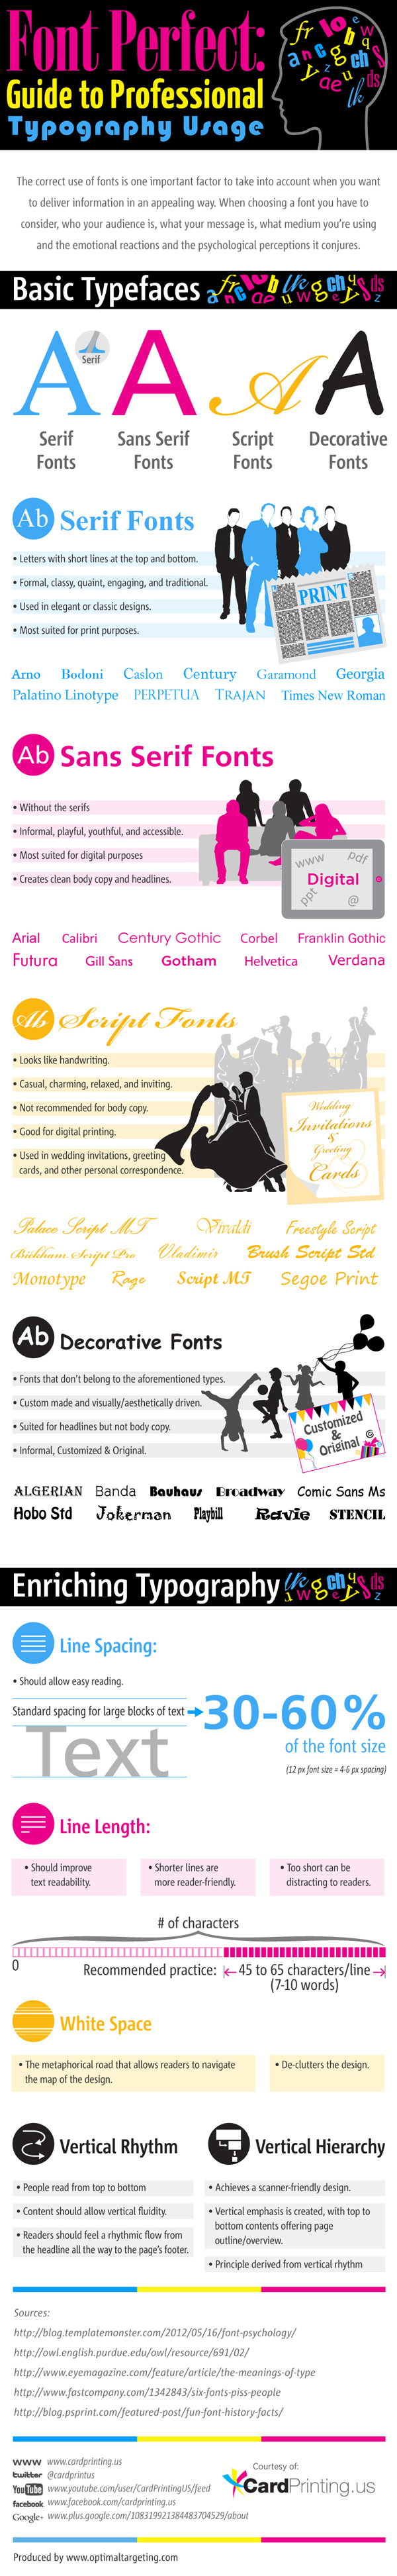 An infographic guide to professional typography usage